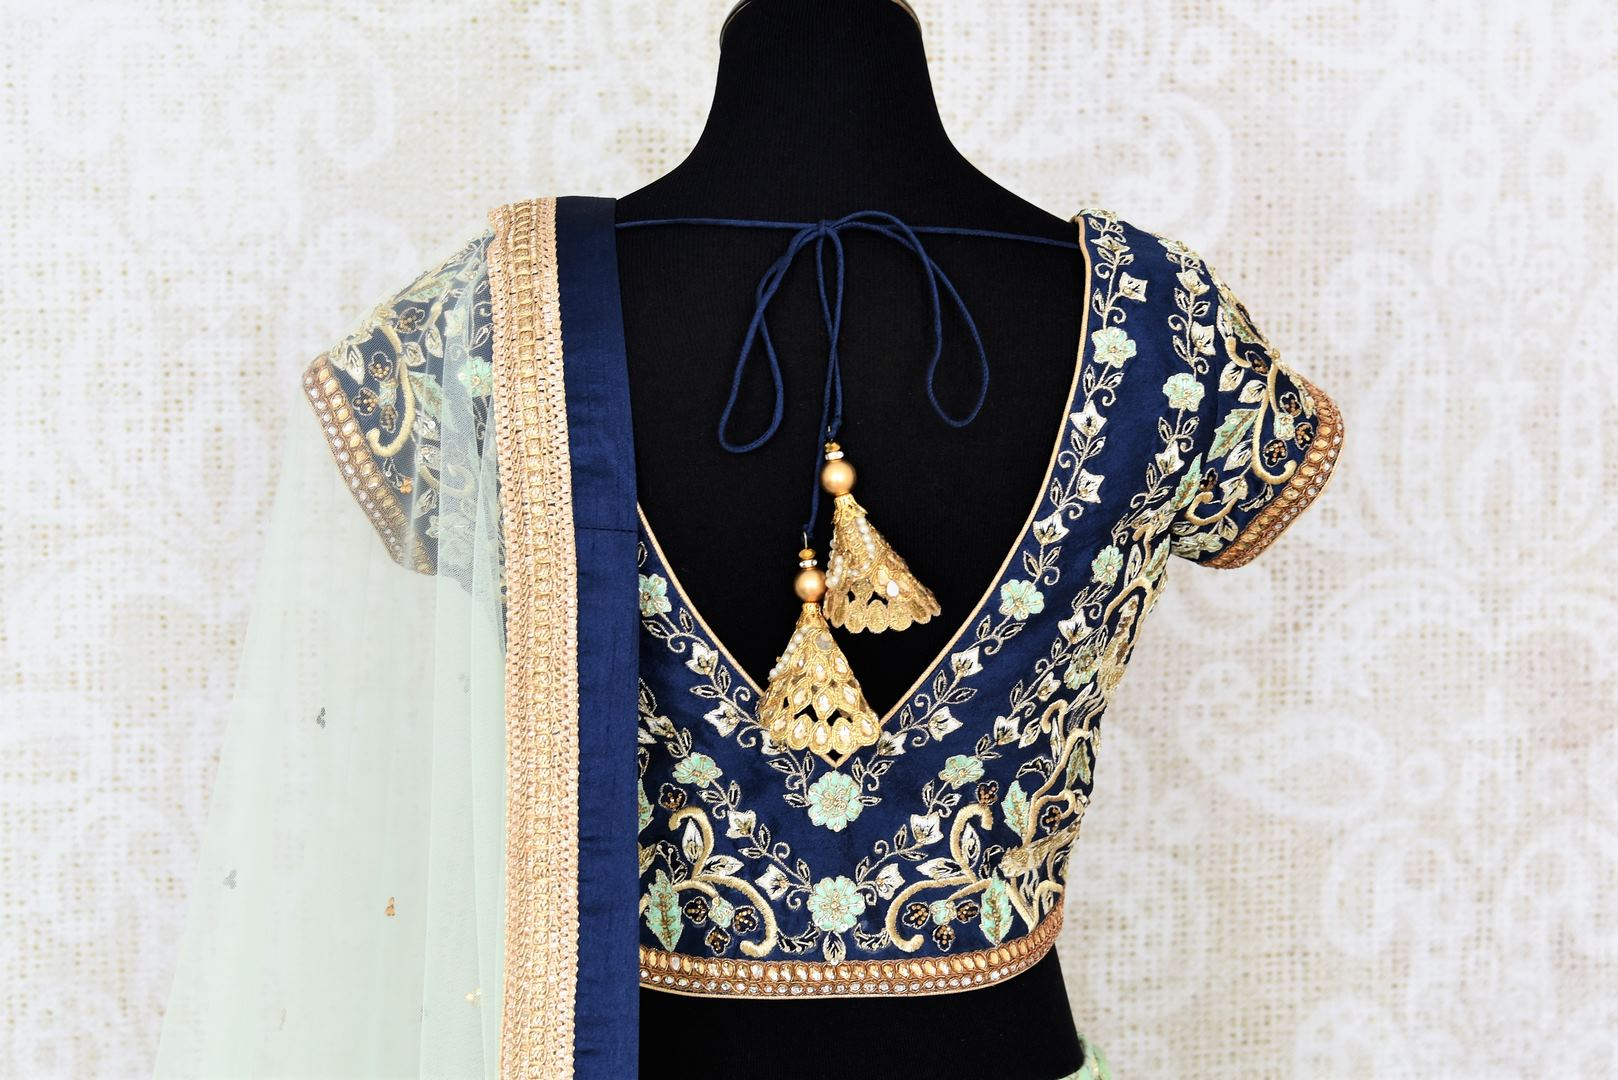 Buy pastel green and blue embroidered chanderi lehenga with dupatta online in USA. Add brilliance to your Indian wedding look with an exquisite range of designer wedding lehengas available at Pure Elegance exclusive clothing store in USA or shop online.-blouse back